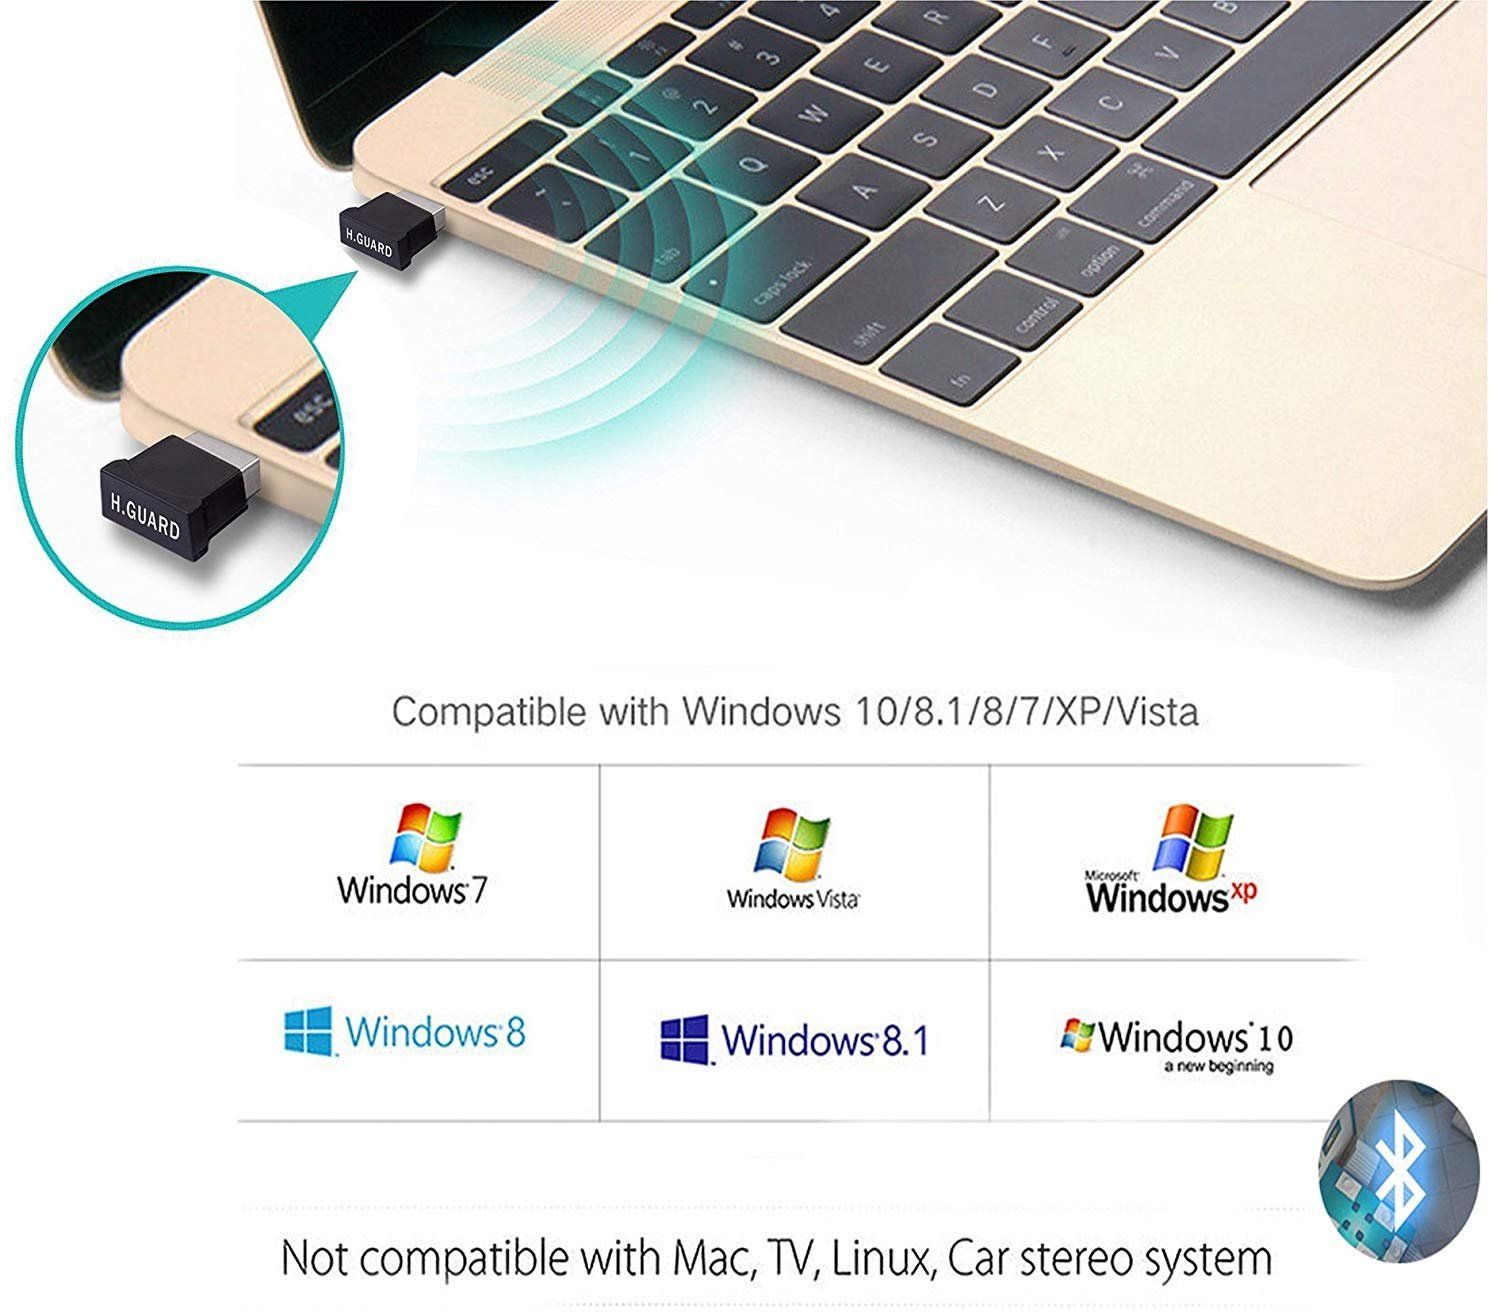 Bluetooth USB Adapter, Bluetooth 4.0 USB Dongle, Low Energy for PC, Wireless Dongle, for Stereo Music, Keyboard, Mouse, Support Windows 10 8.1 8 7 XP vista by JFen (Image #2)